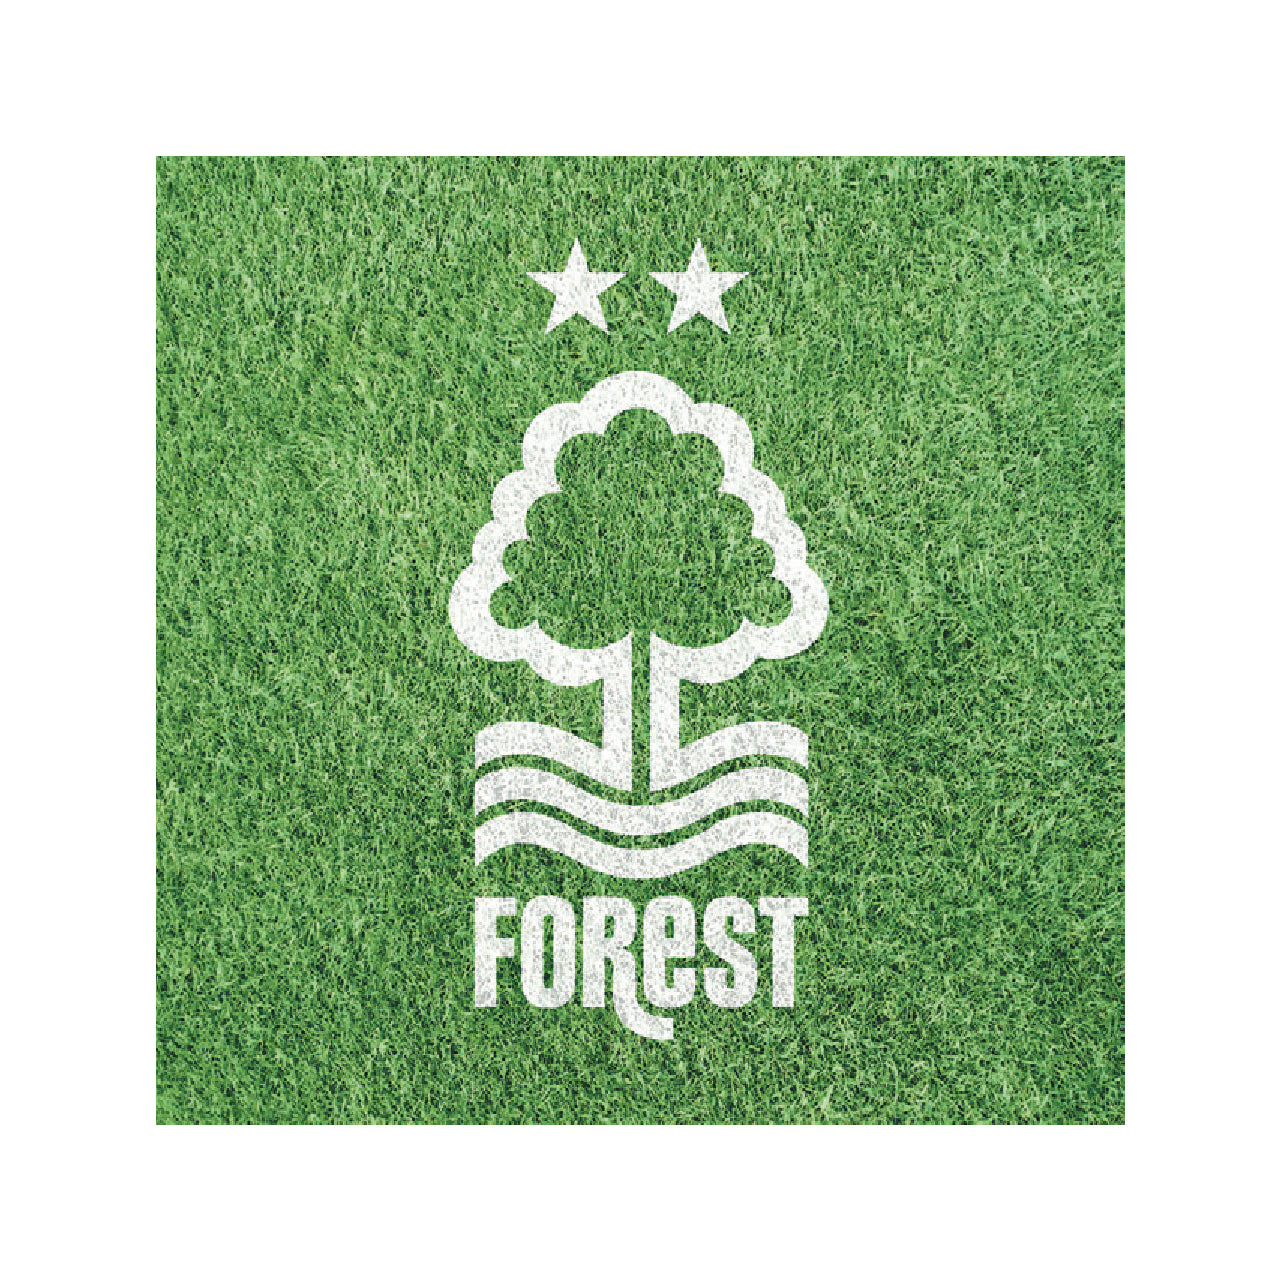 NFFC Crest on Astroturf Card